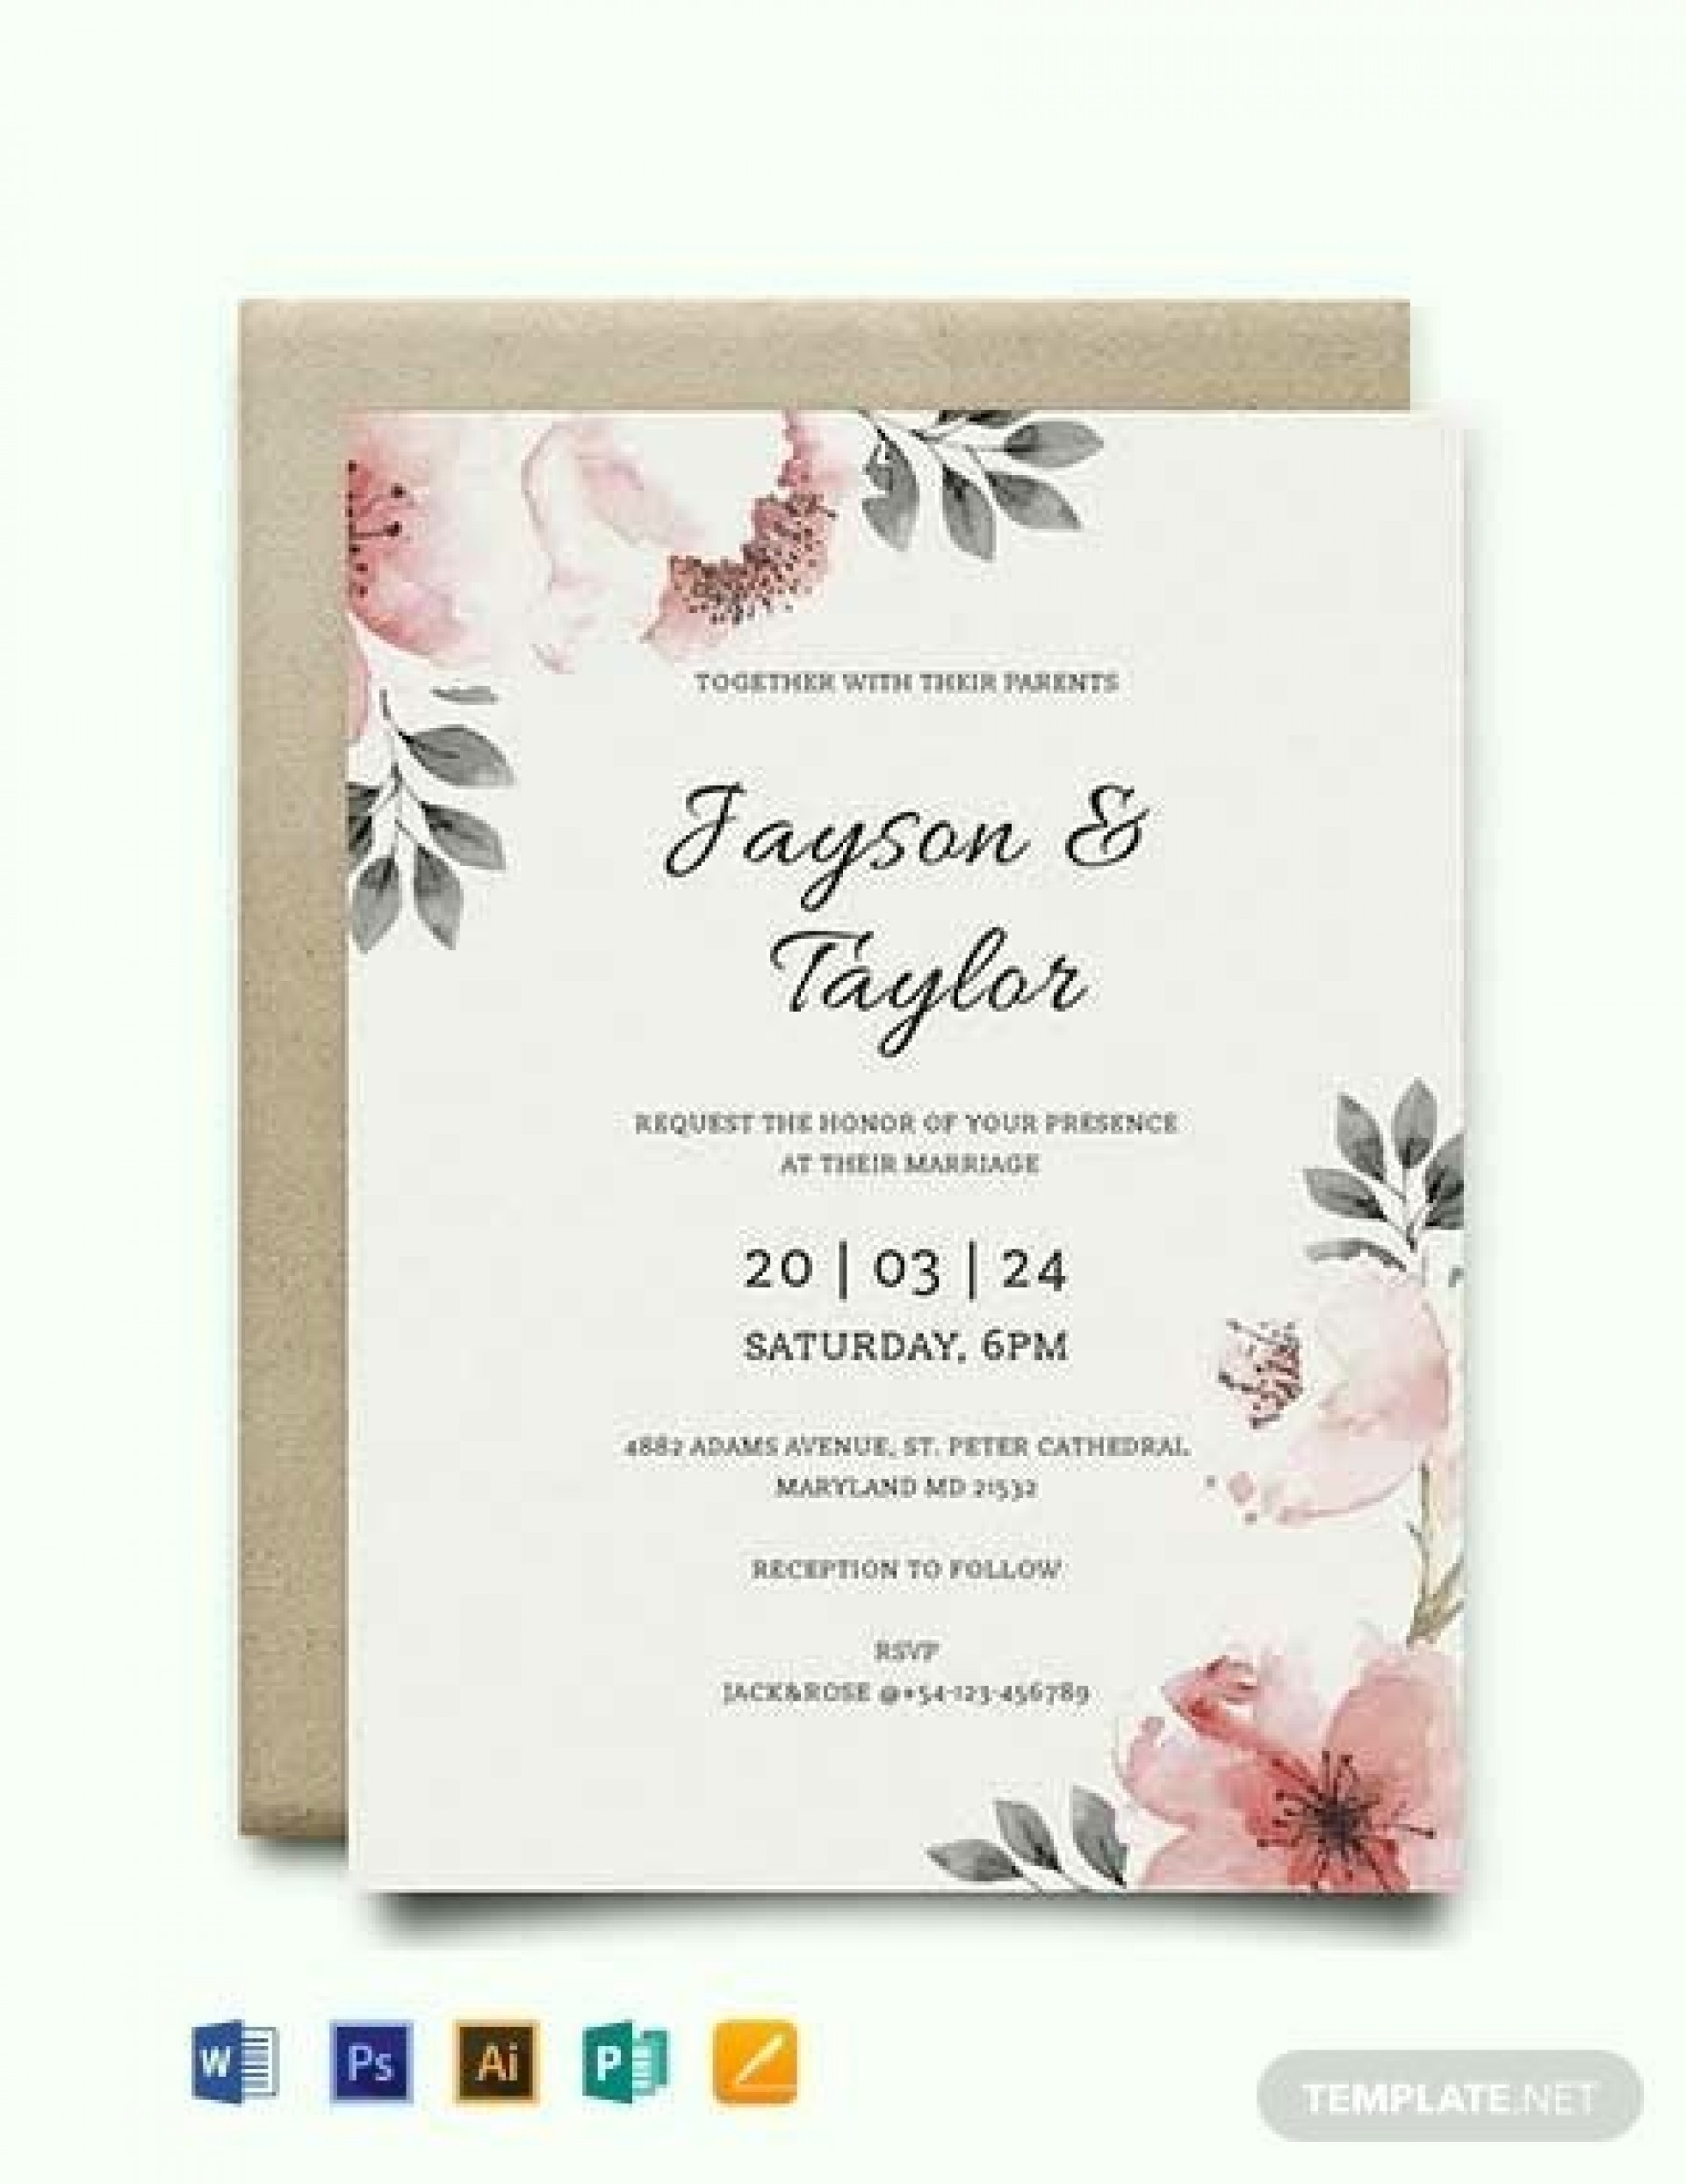 000 Striking Free Download Marriage Invitation Template Example  Card Design Psd After Effect1920